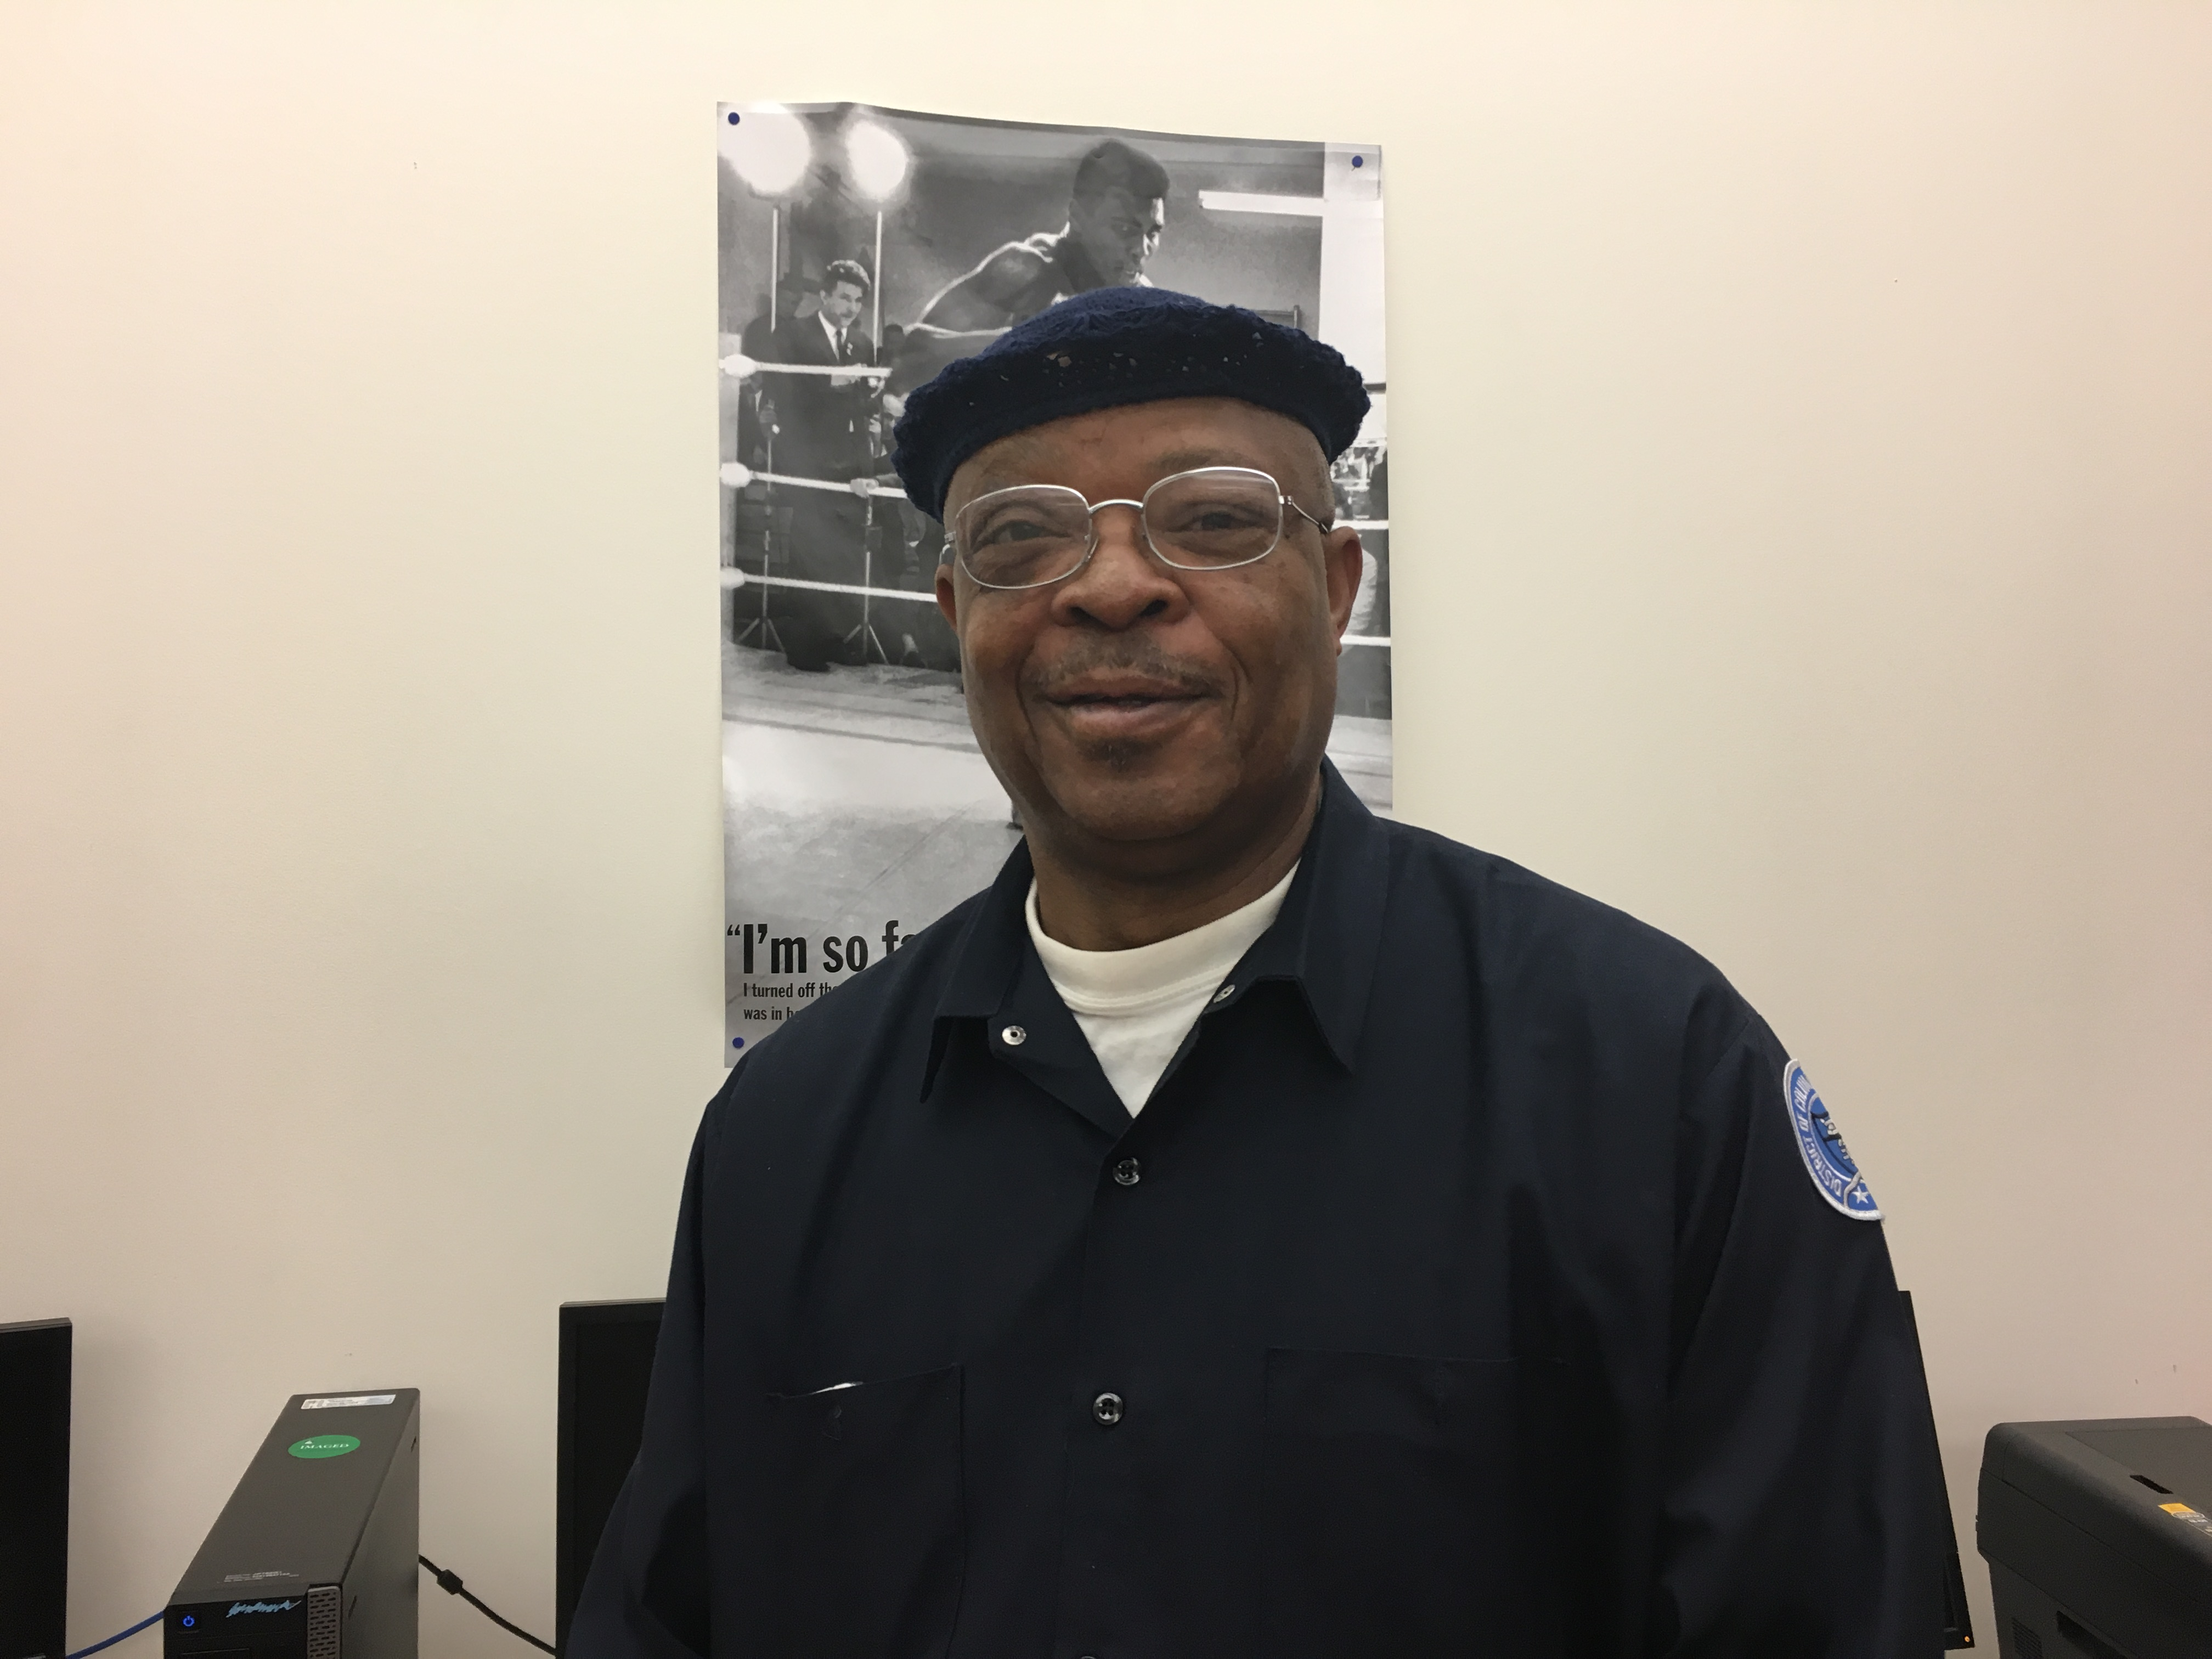 Cleaning with care: a profile on custodian Steve James